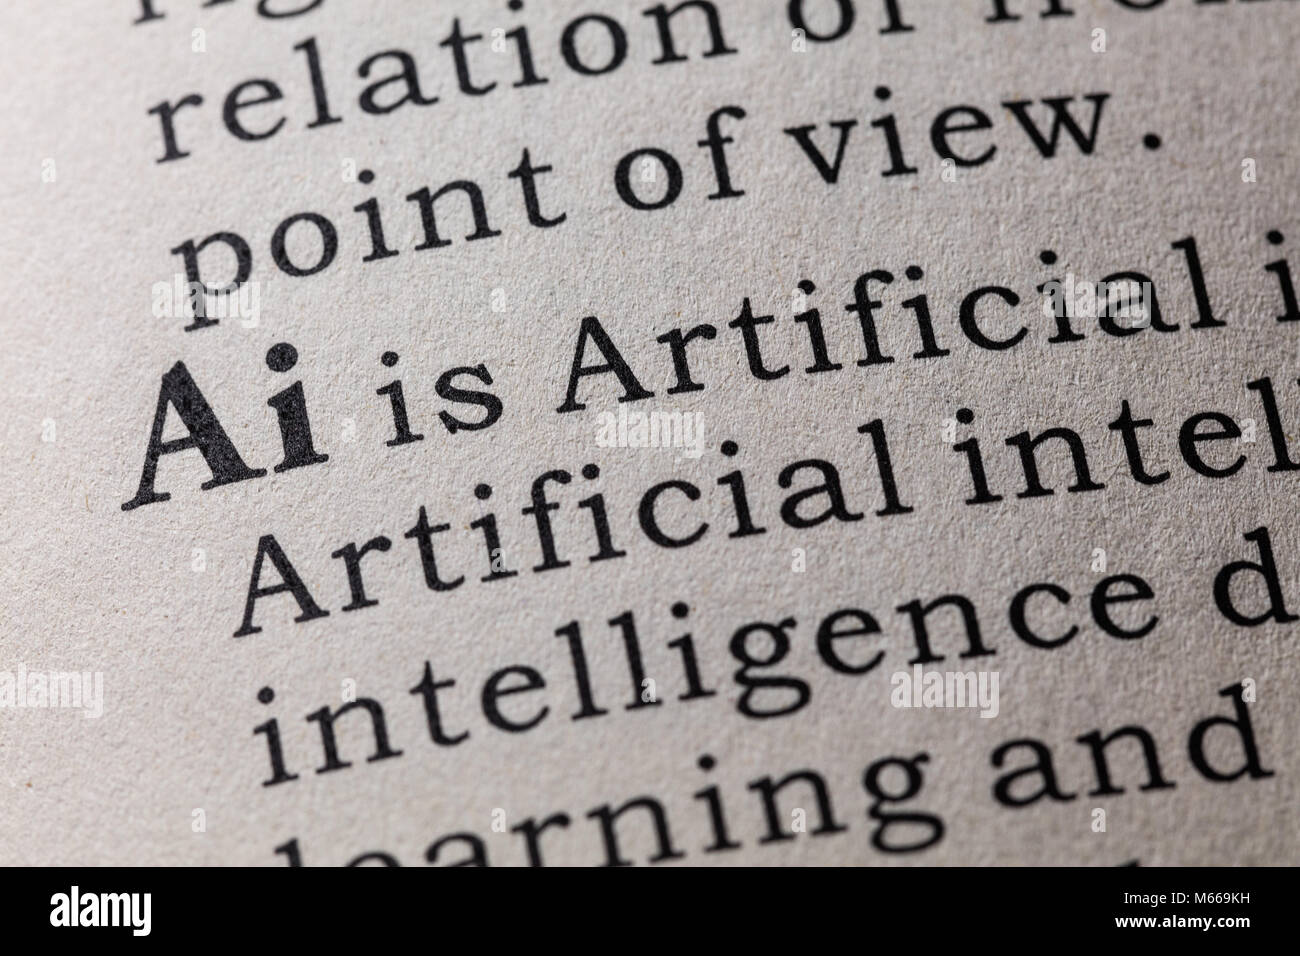 Fake Dictionary, Dictionary definition of the word Ai